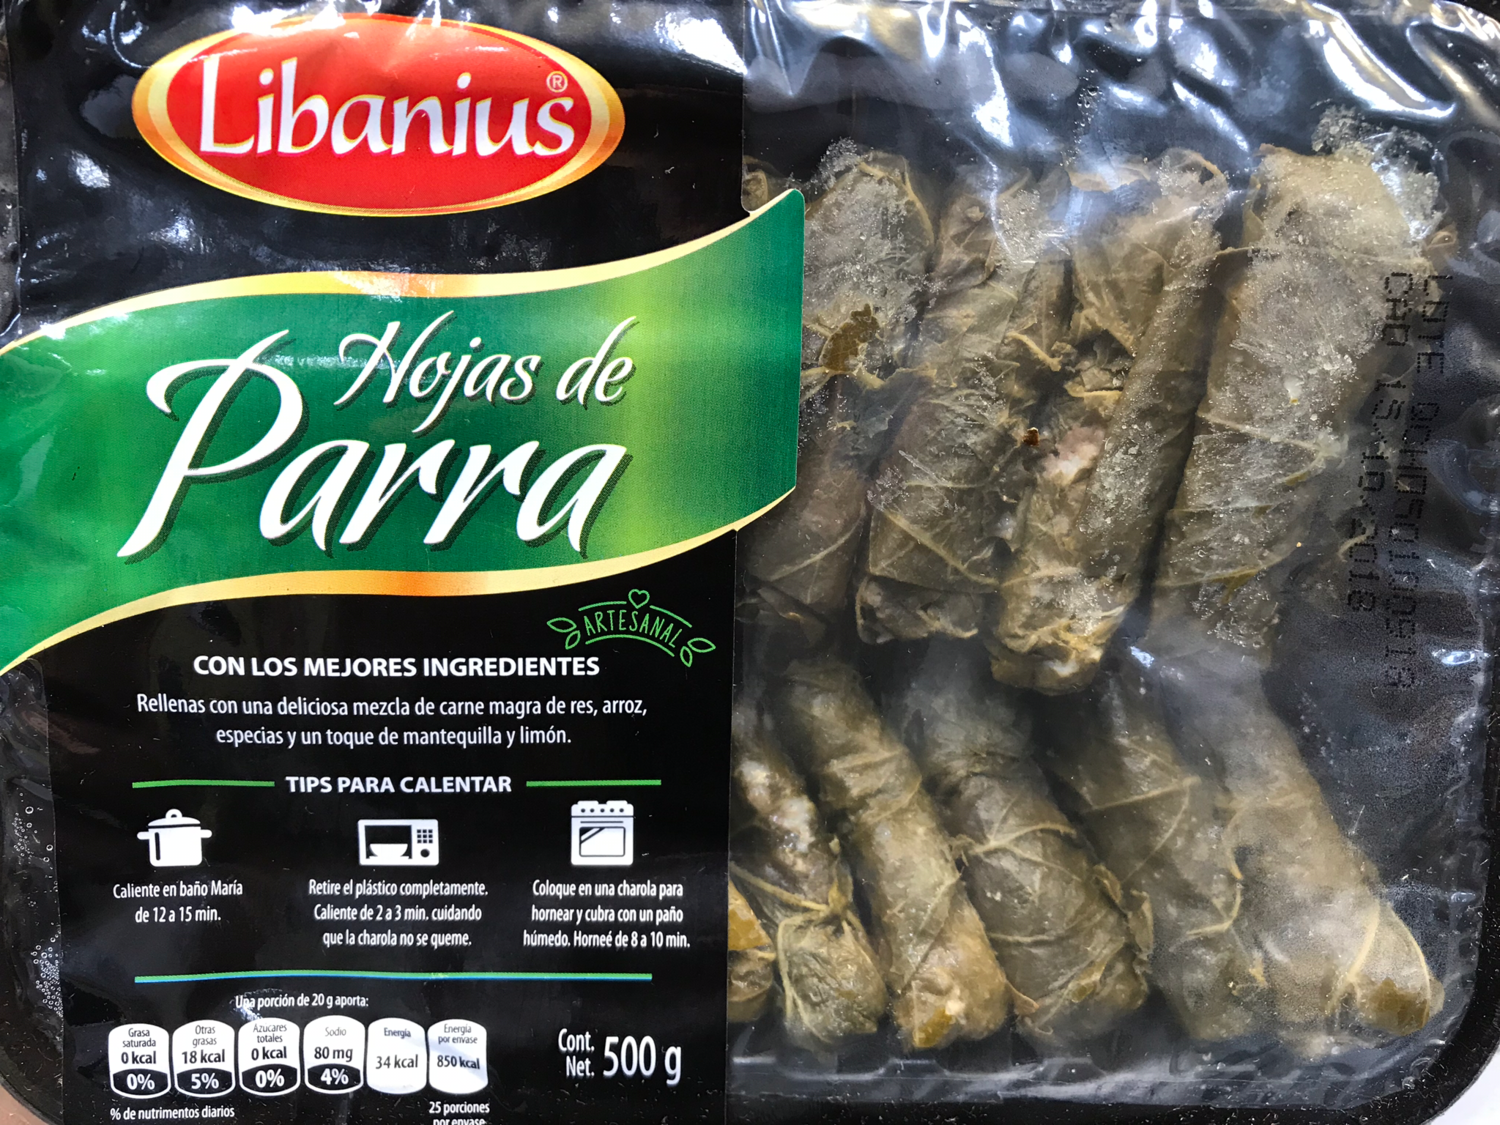 Grape Leaf Rolls filled w/ beef, rice, spices, butter and lemon (500g)